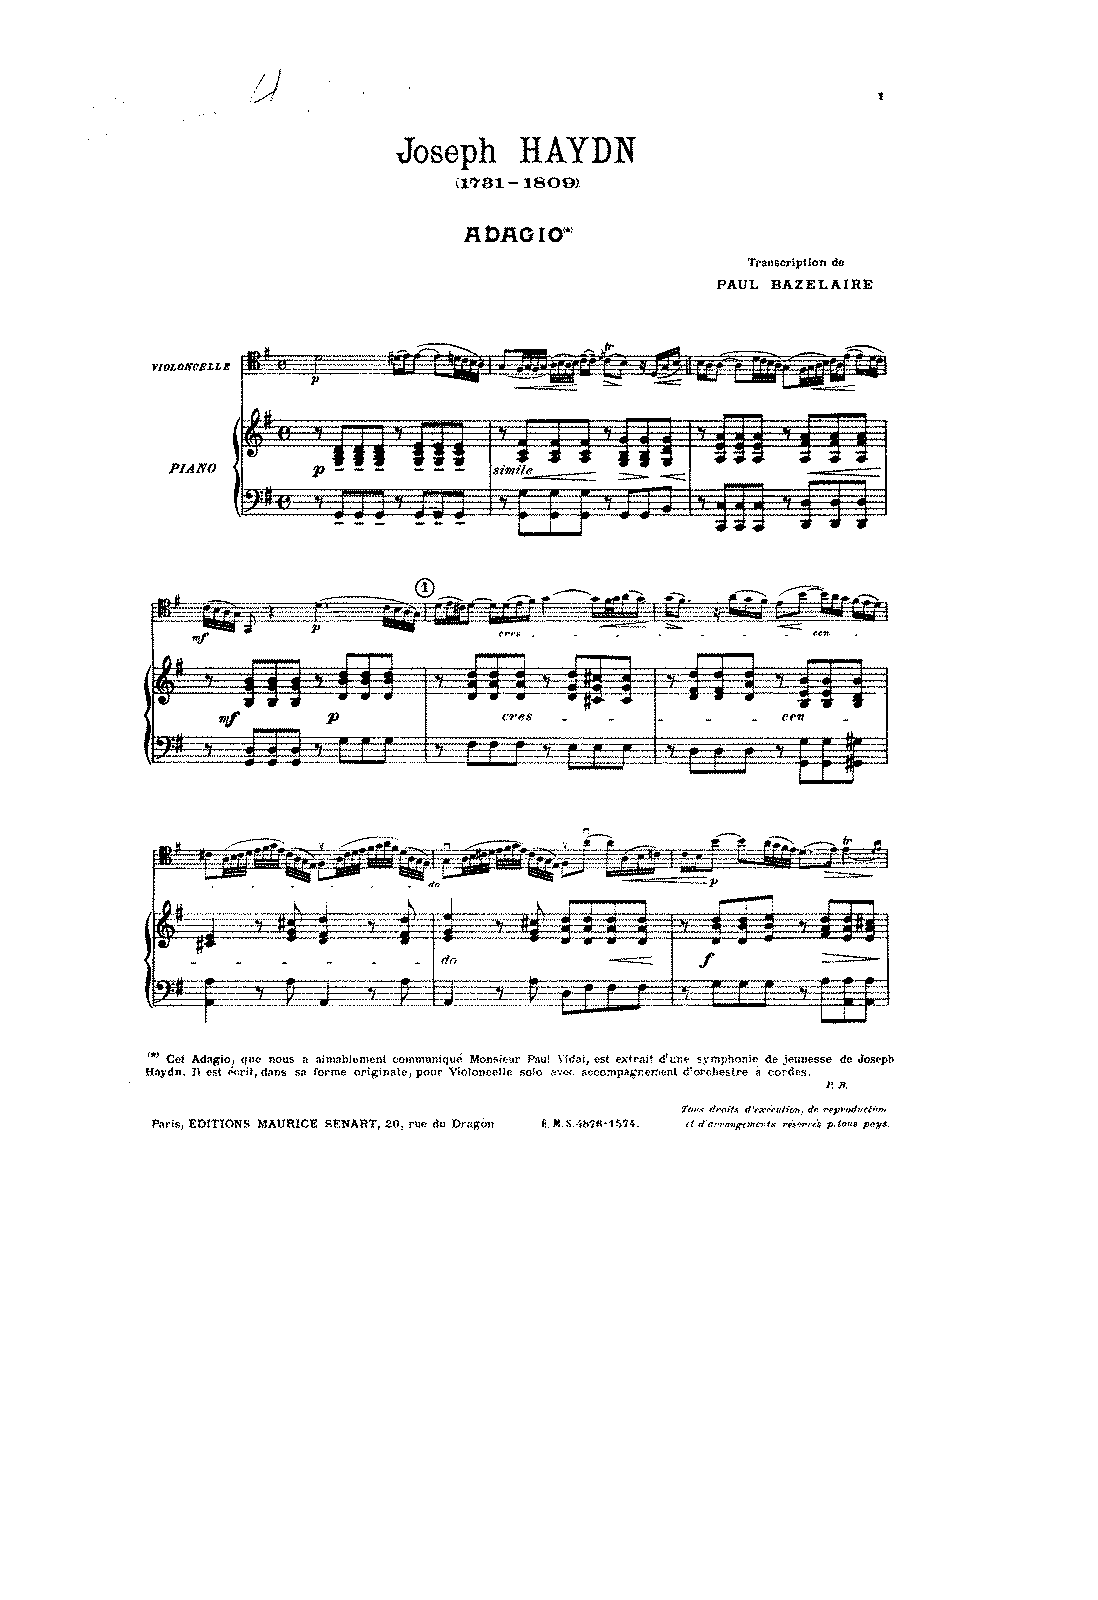 PMLP35140-Haydn - Adagio for Cello and Piano from Sym No13 (arr Bazelaire) score.pdf